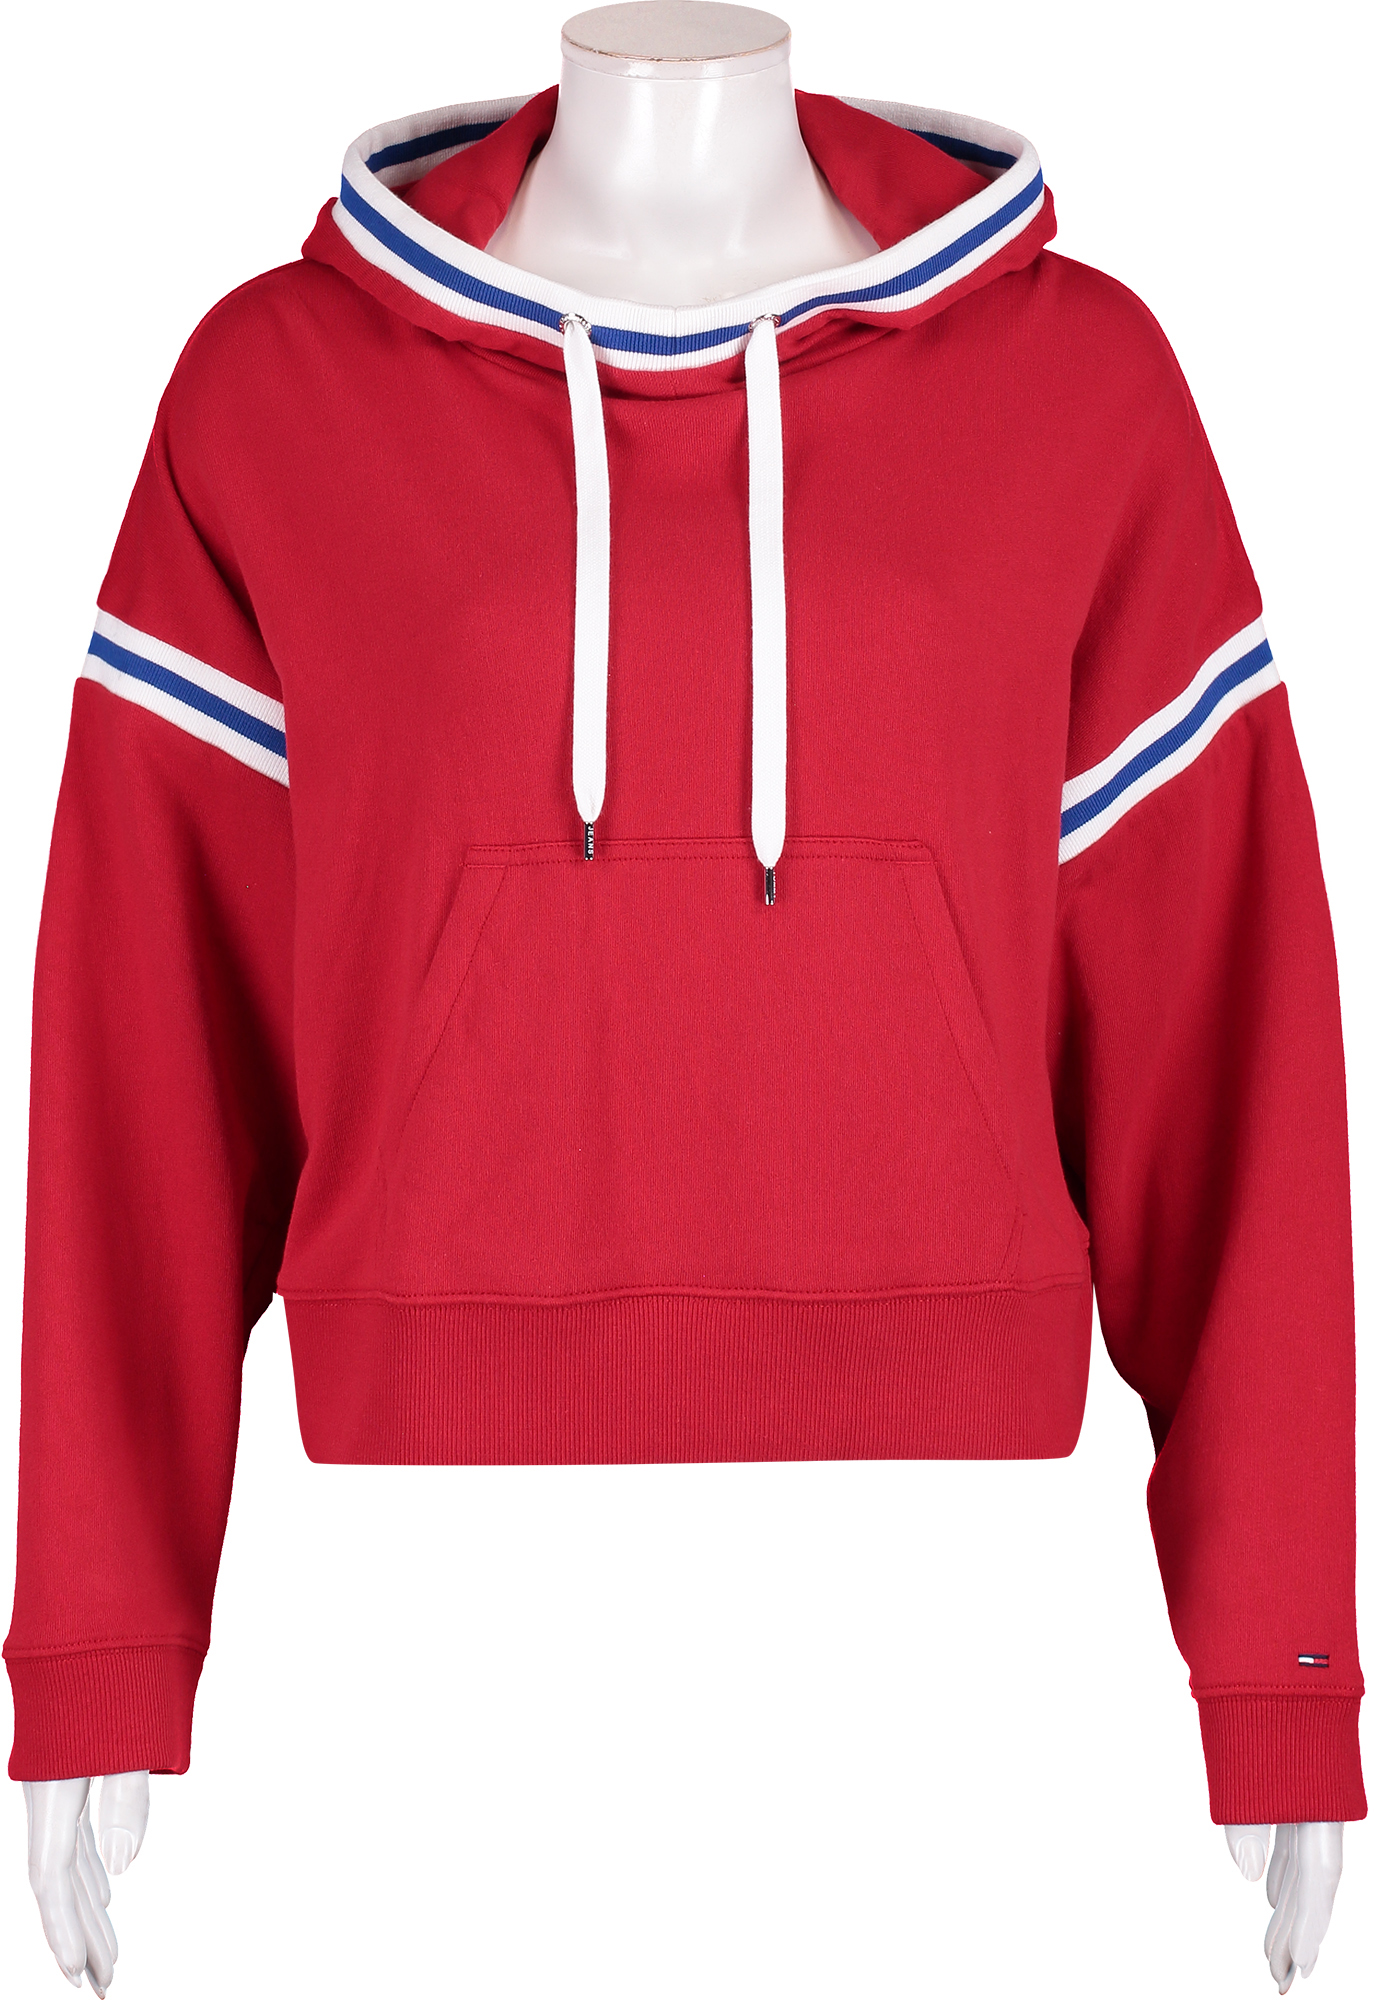 Piet Zoomers, Tommy Hilfiger Jeans dames sweater